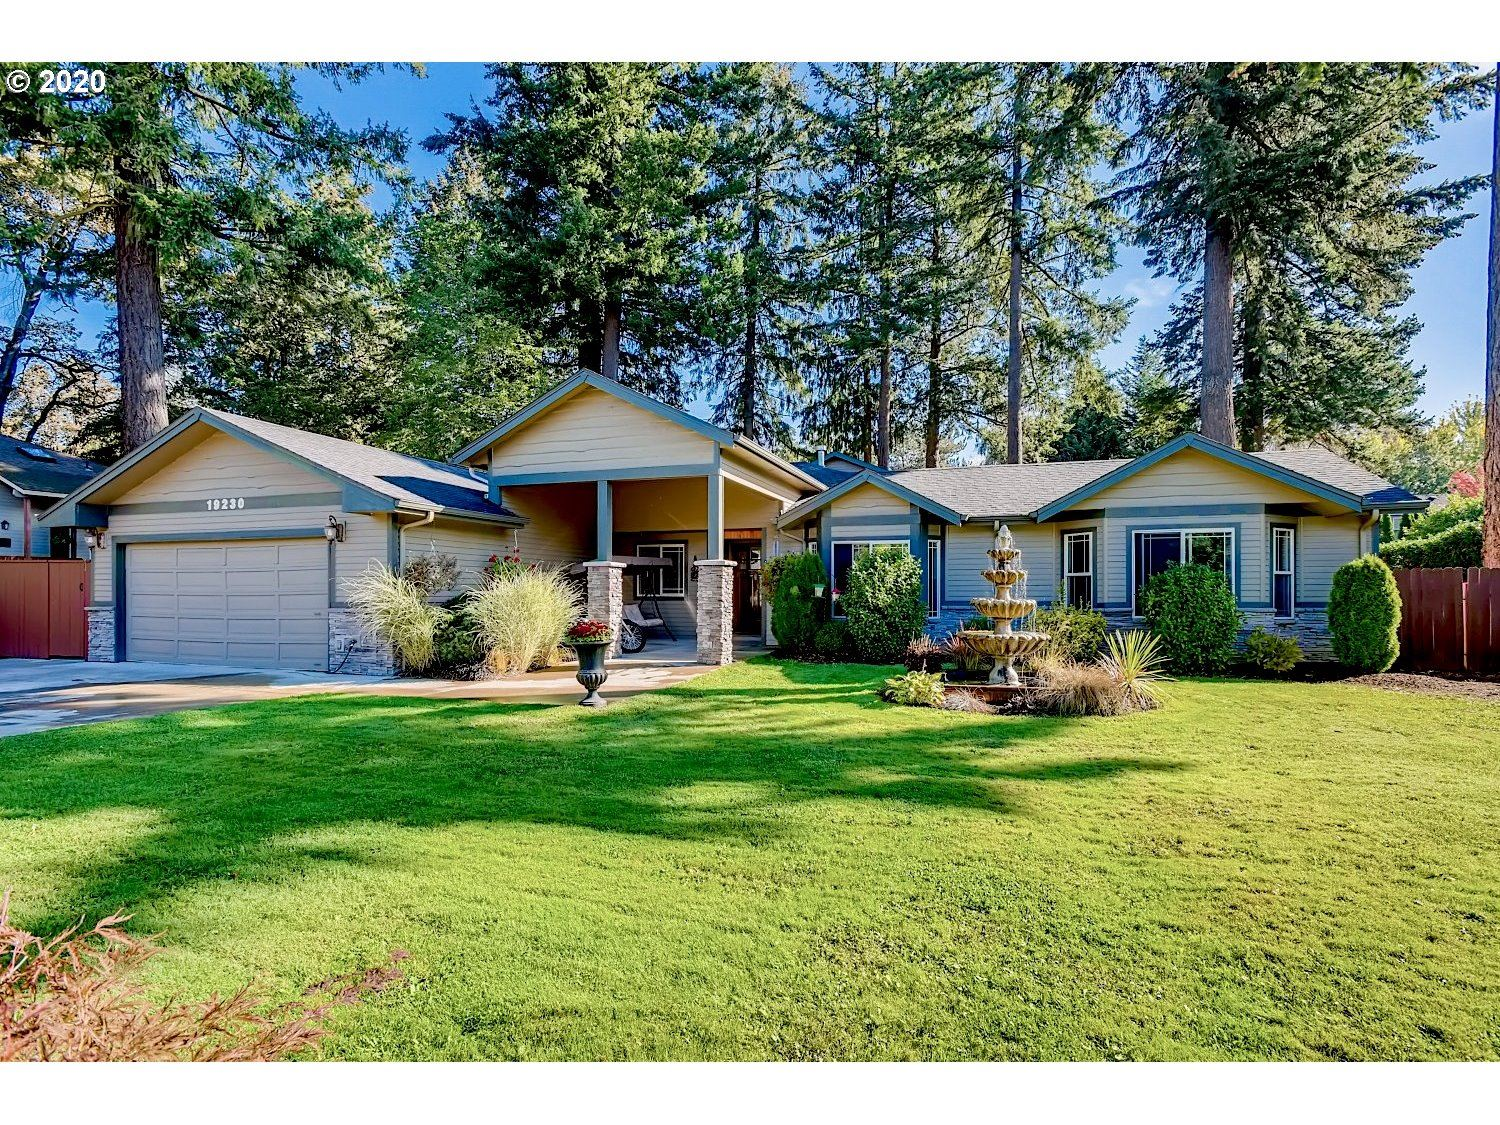 Photo for 19230 BRYANT RD, Lake Oswego, OR 97034 (MLS # 20315818)